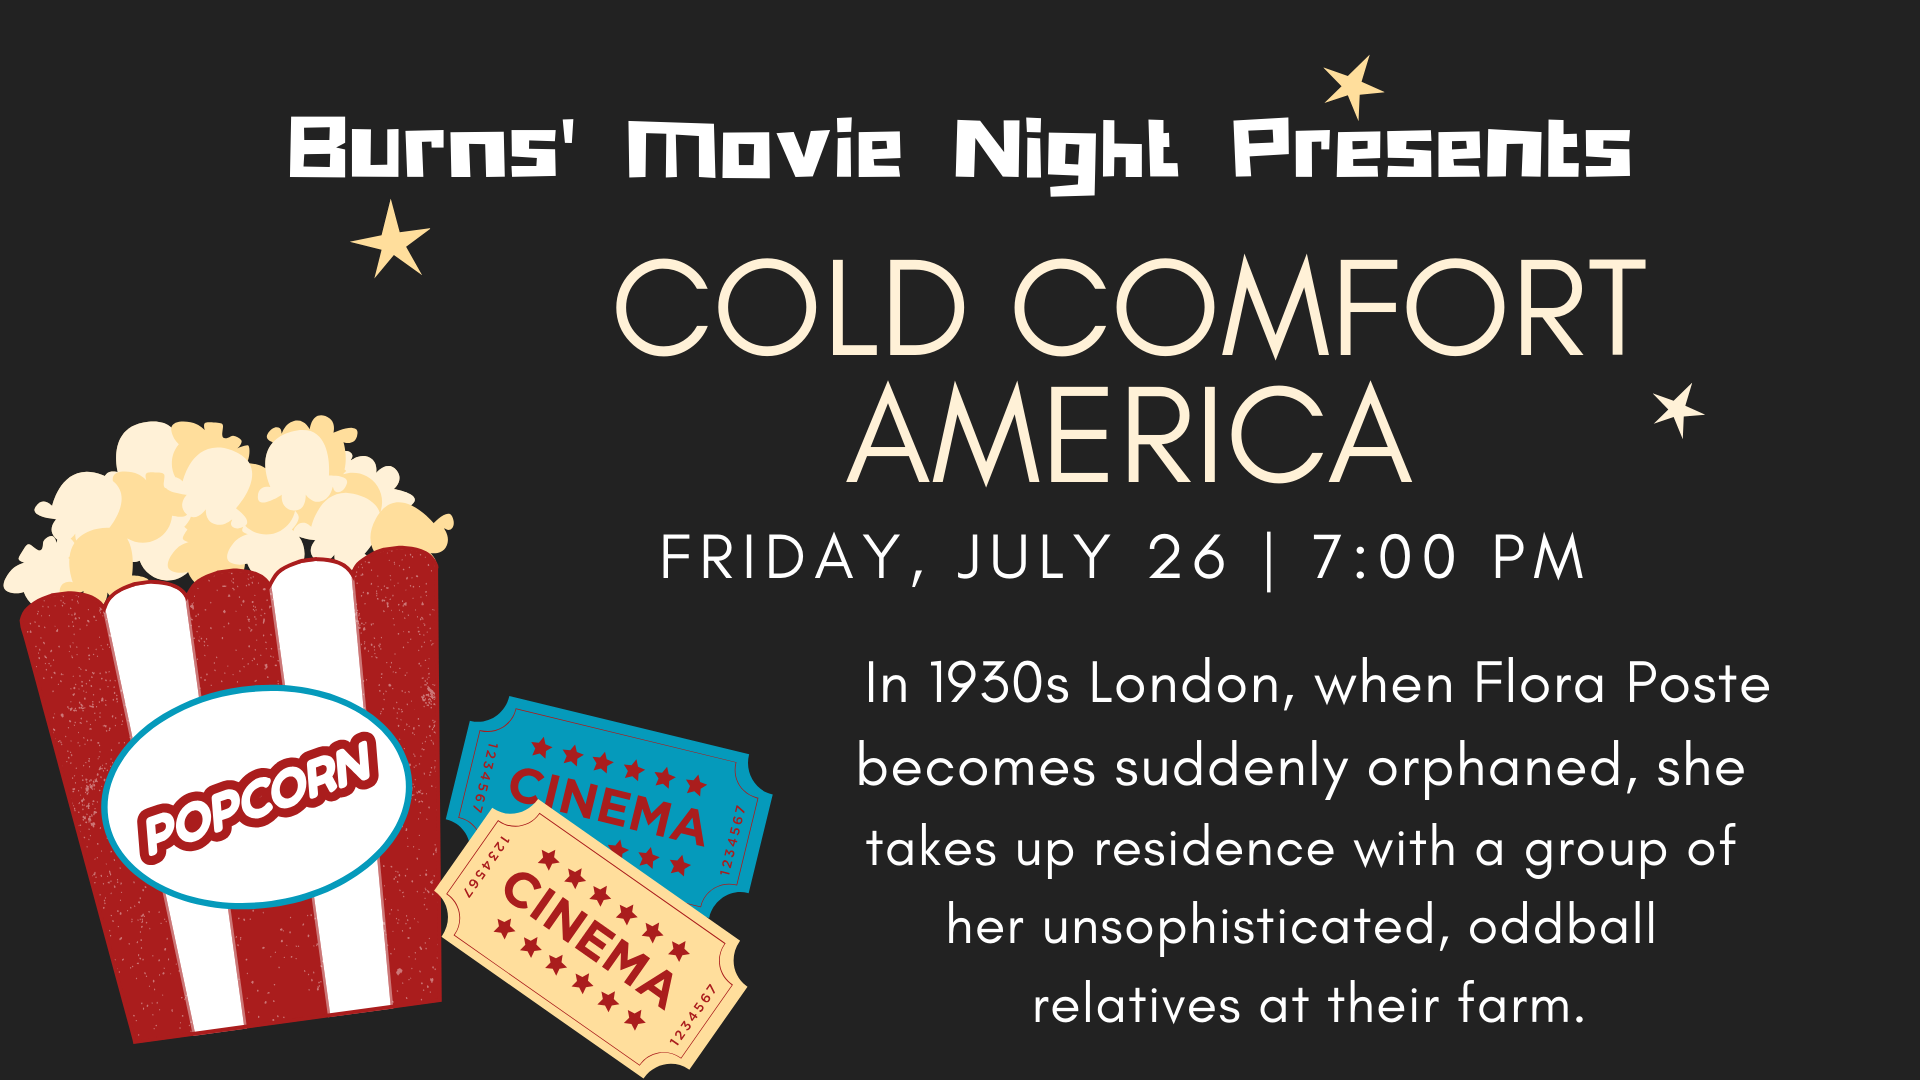 COLD COMFORT INN (1995, PG). When Flora Poste (Kate Beckinsale), a young society woman in 1930s London, becomes suddenly orphaned, she's forced to take up residence with a group of her unsophisticated, oddball relatives at their farm. Despite protests from the bedridden, iron-willed matriarch of the farm, the aspiring lass tries to achieve some semblance of order and class in the house---and in her own life. Cast also includes Eileen Atkins, Ian McKlellan and Joanna Lumley.